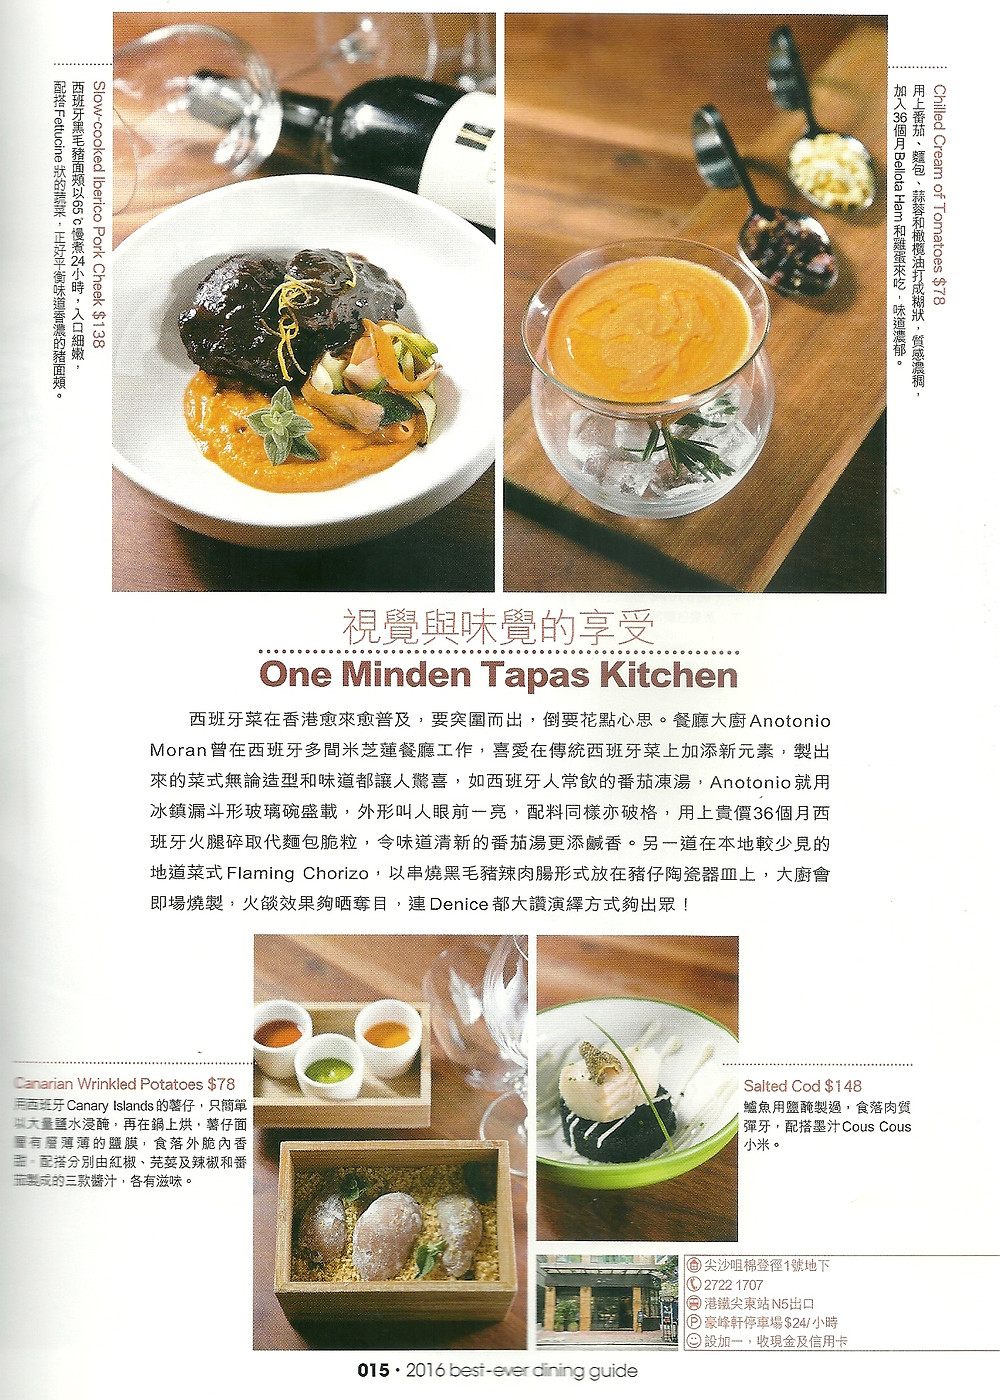 One Minden Tapas Kitchen's dishes are pleasing to both the eyeballs and tastebuds